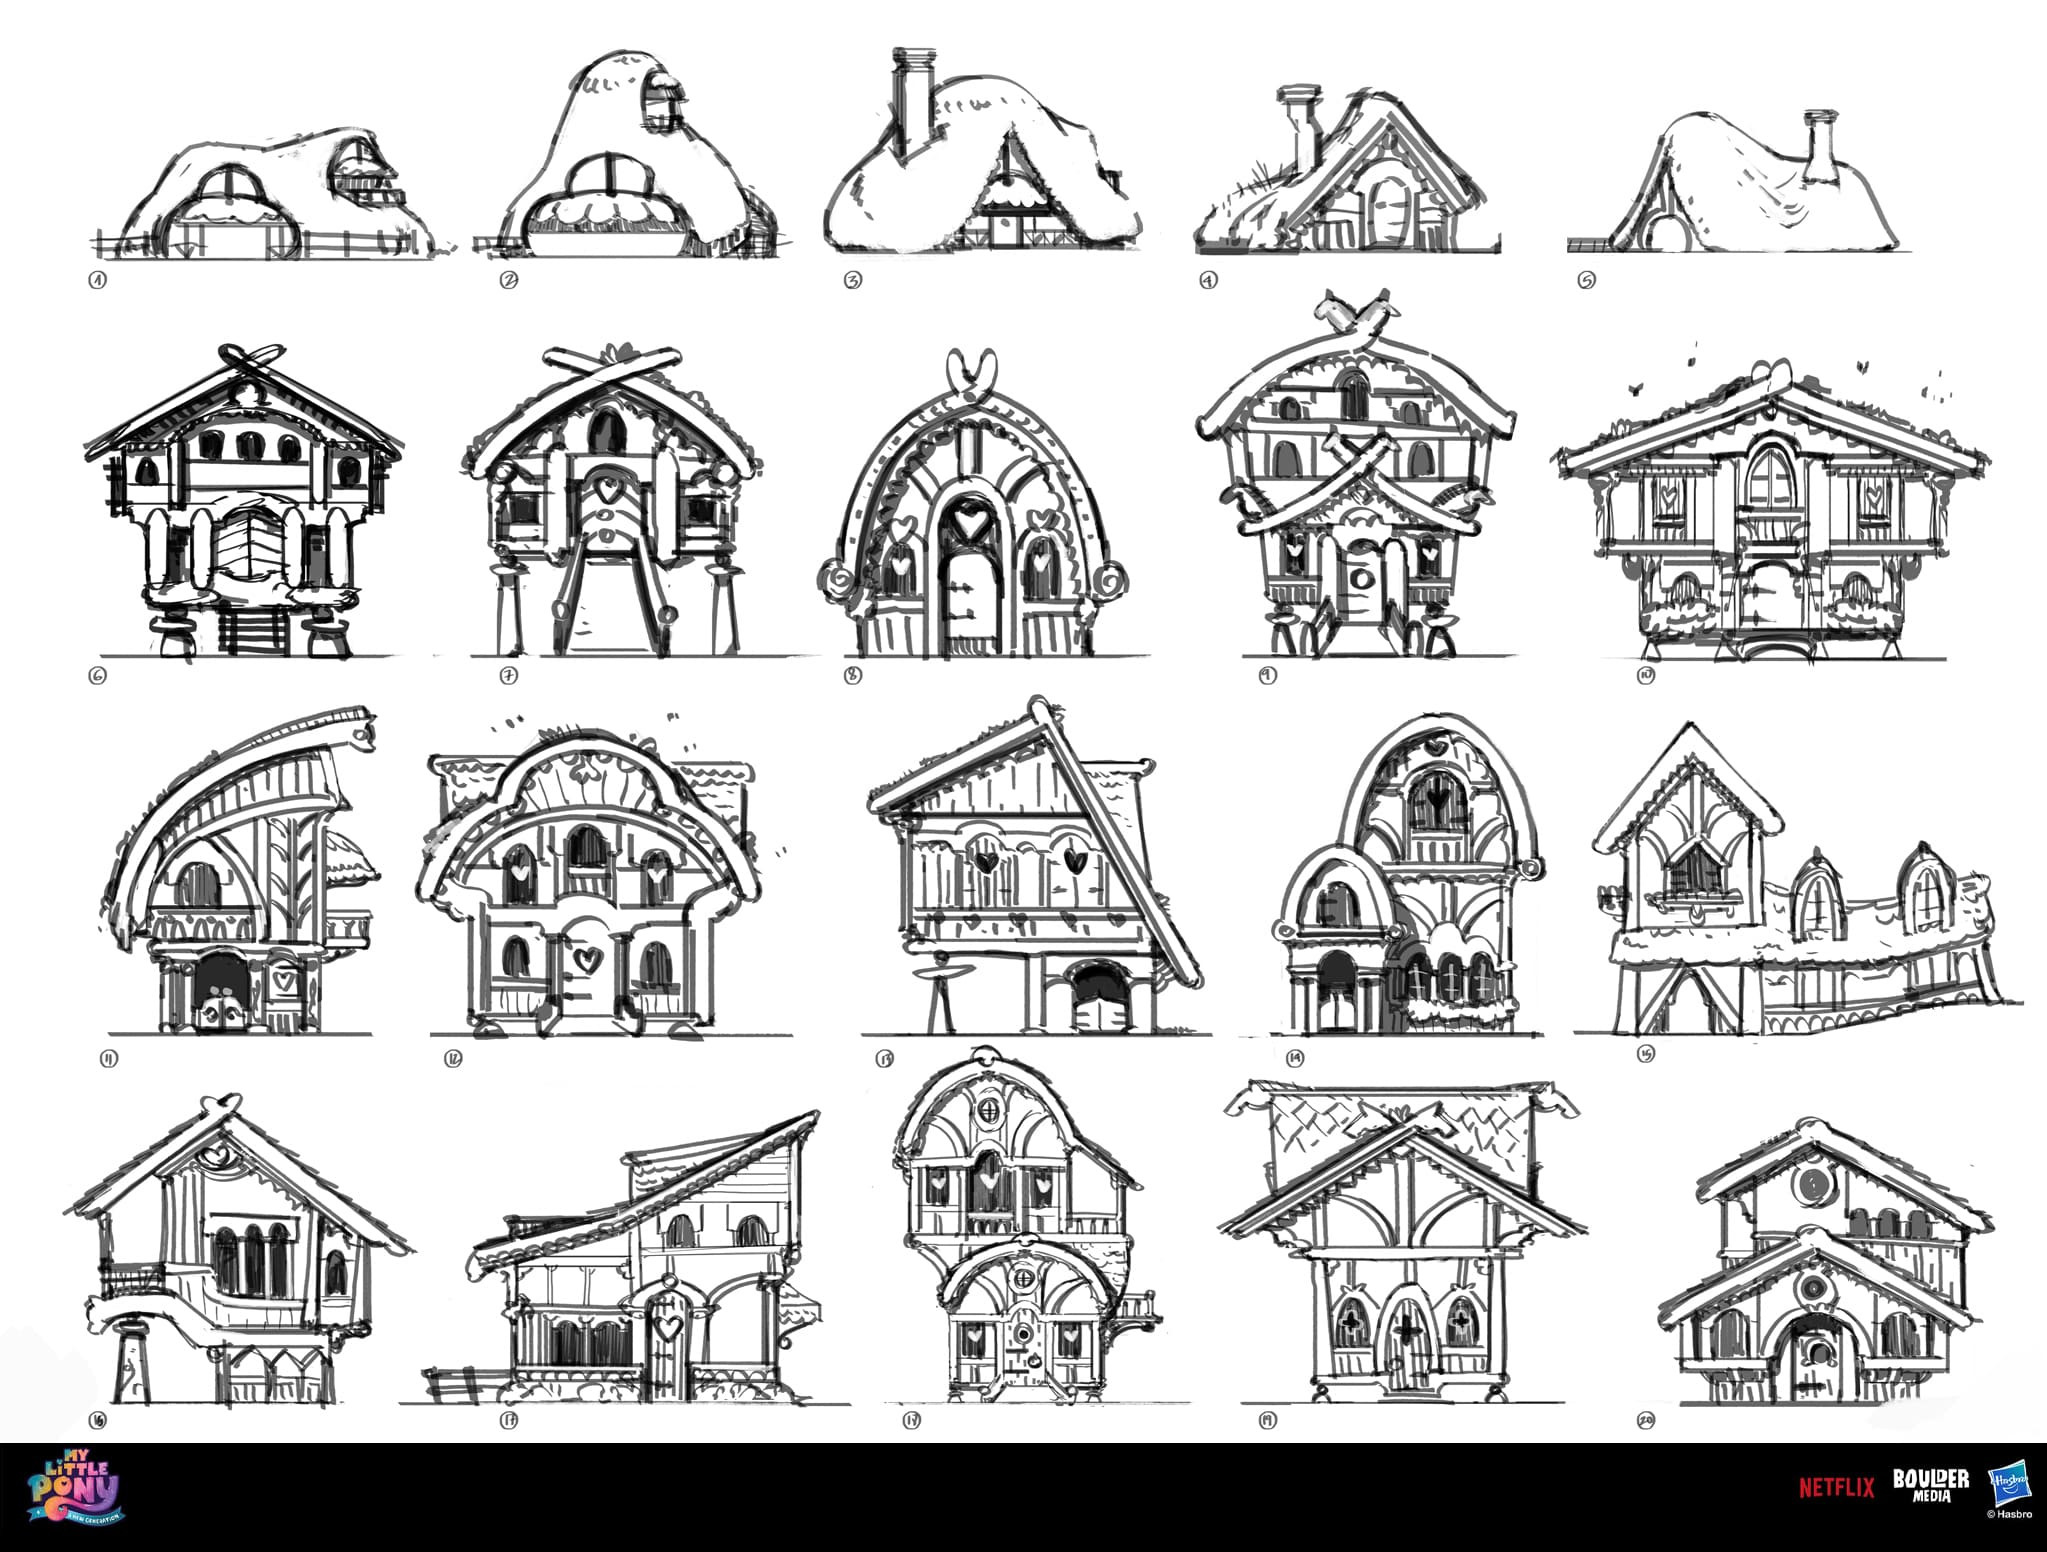 Very early architecture exploration for the earth ponies. Those are some of the first sketches I did!